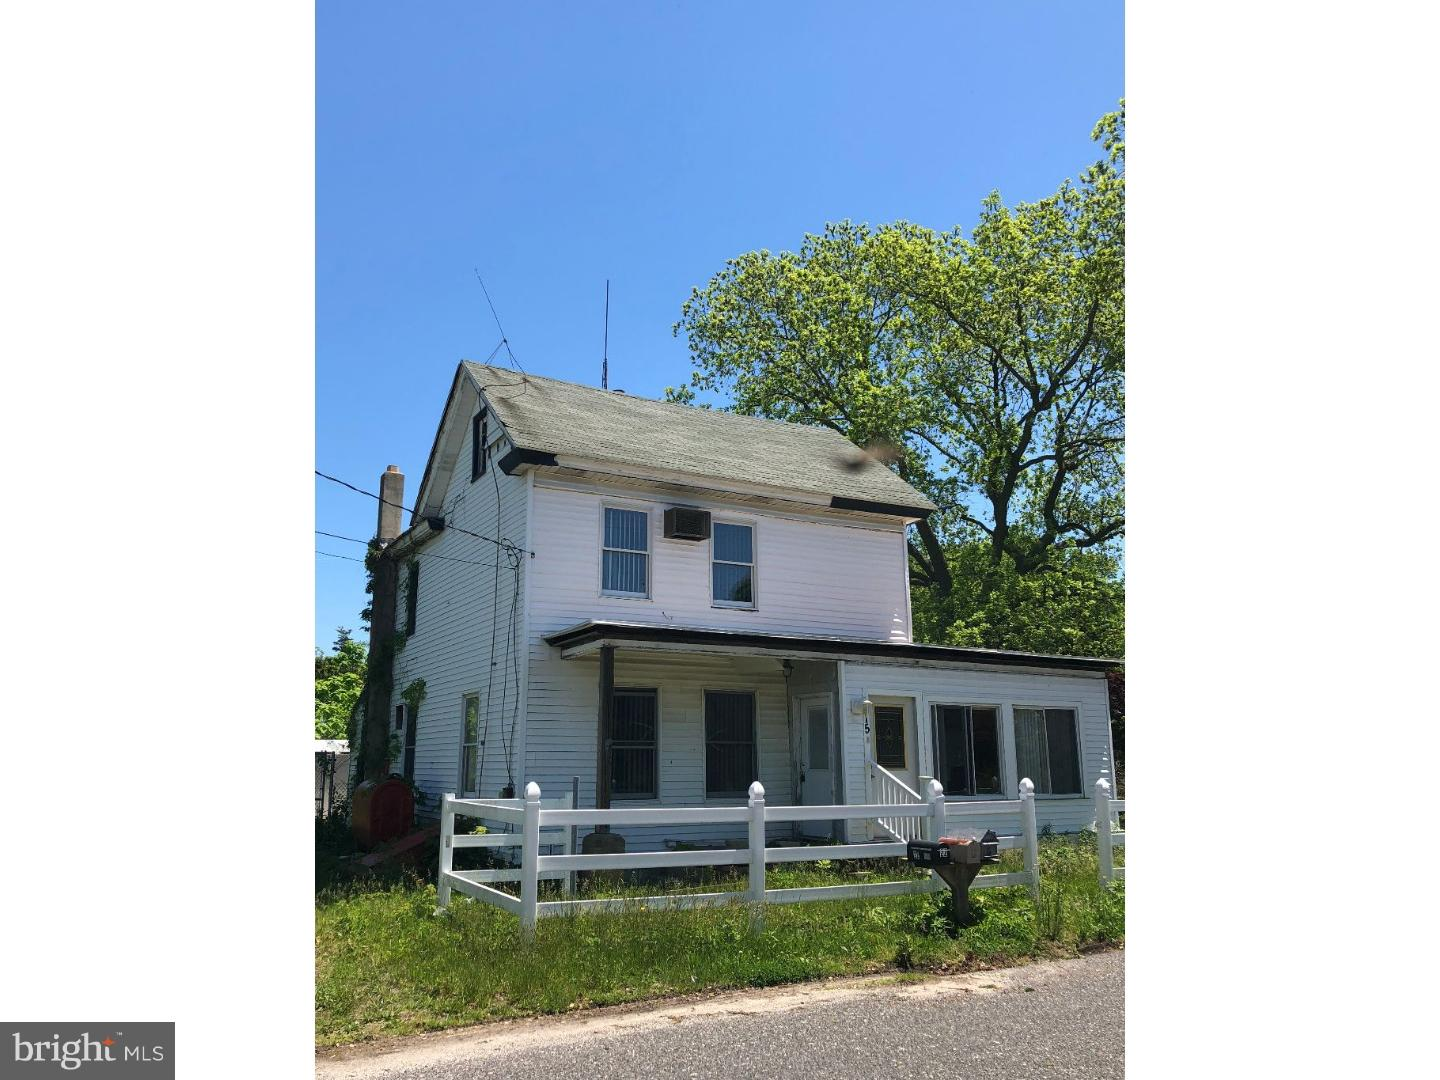 Single Family Home for Sale at 15 HALL Street Newport, New Jersey 08345 United StatesMunicipality: Newport, Newport